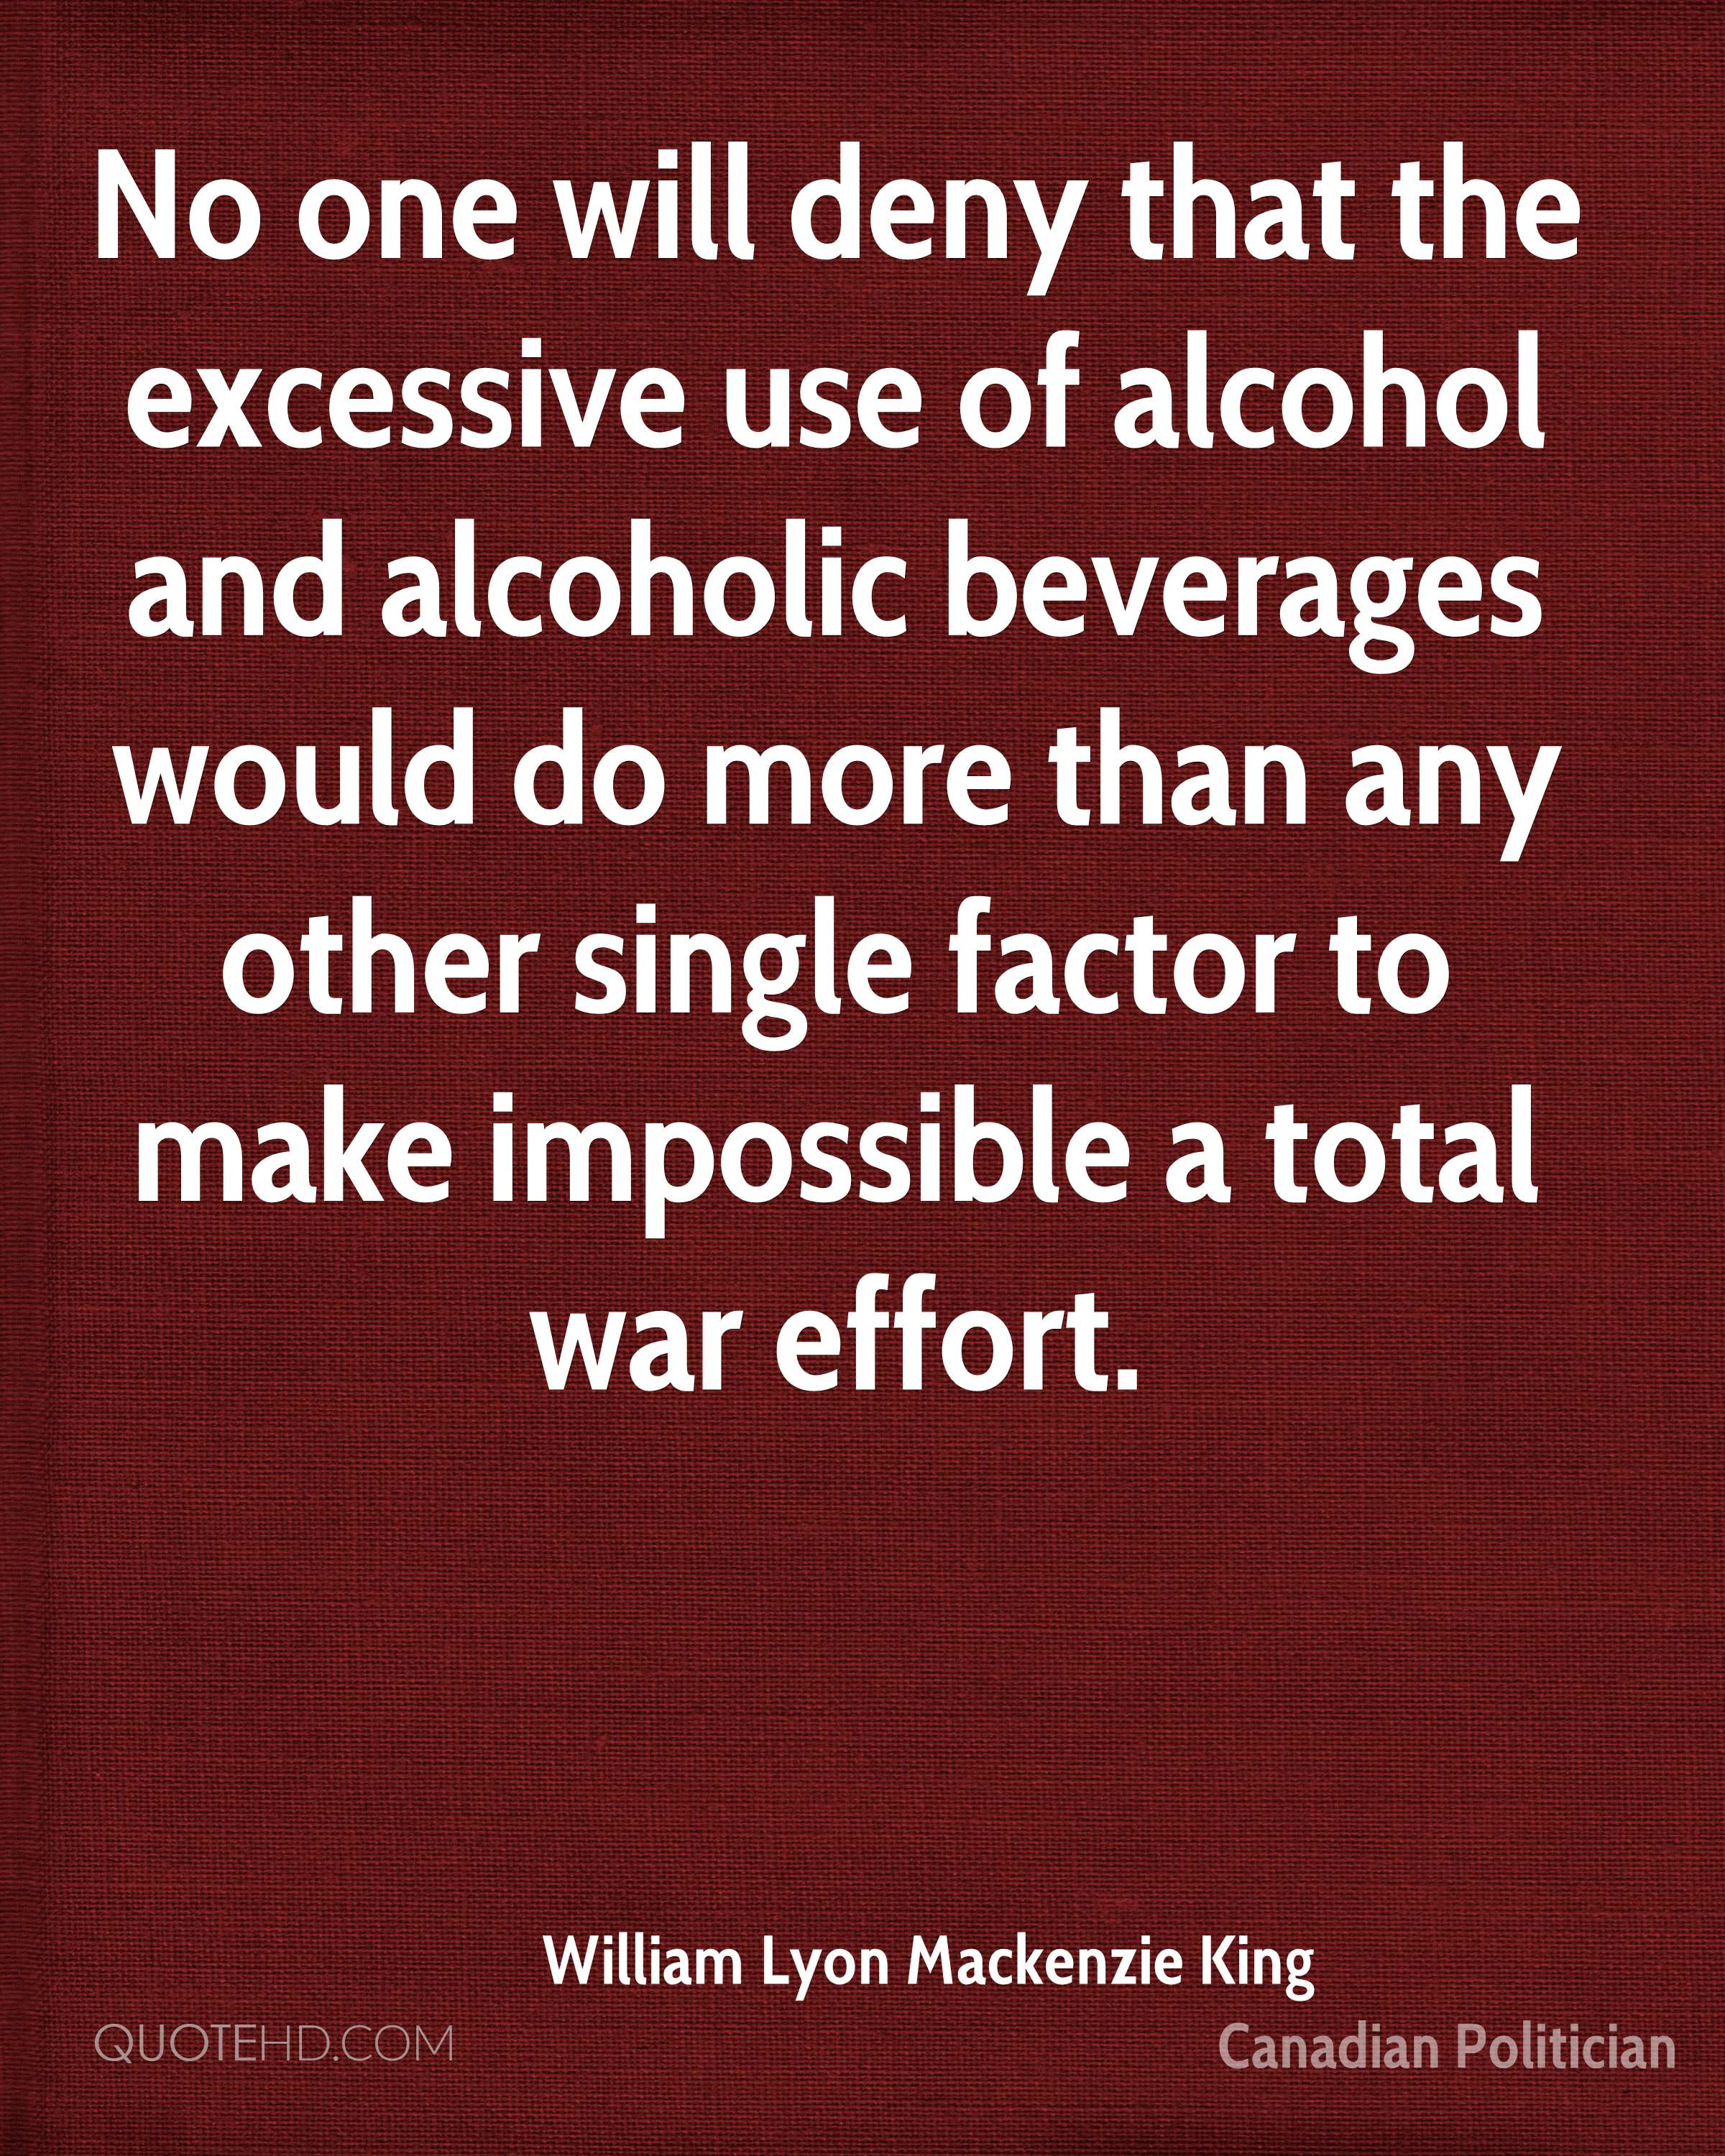 No one will deny that the excessive use of alcohol and alcoholic beverages would do more than any other single factor to make impossible a total war effort.